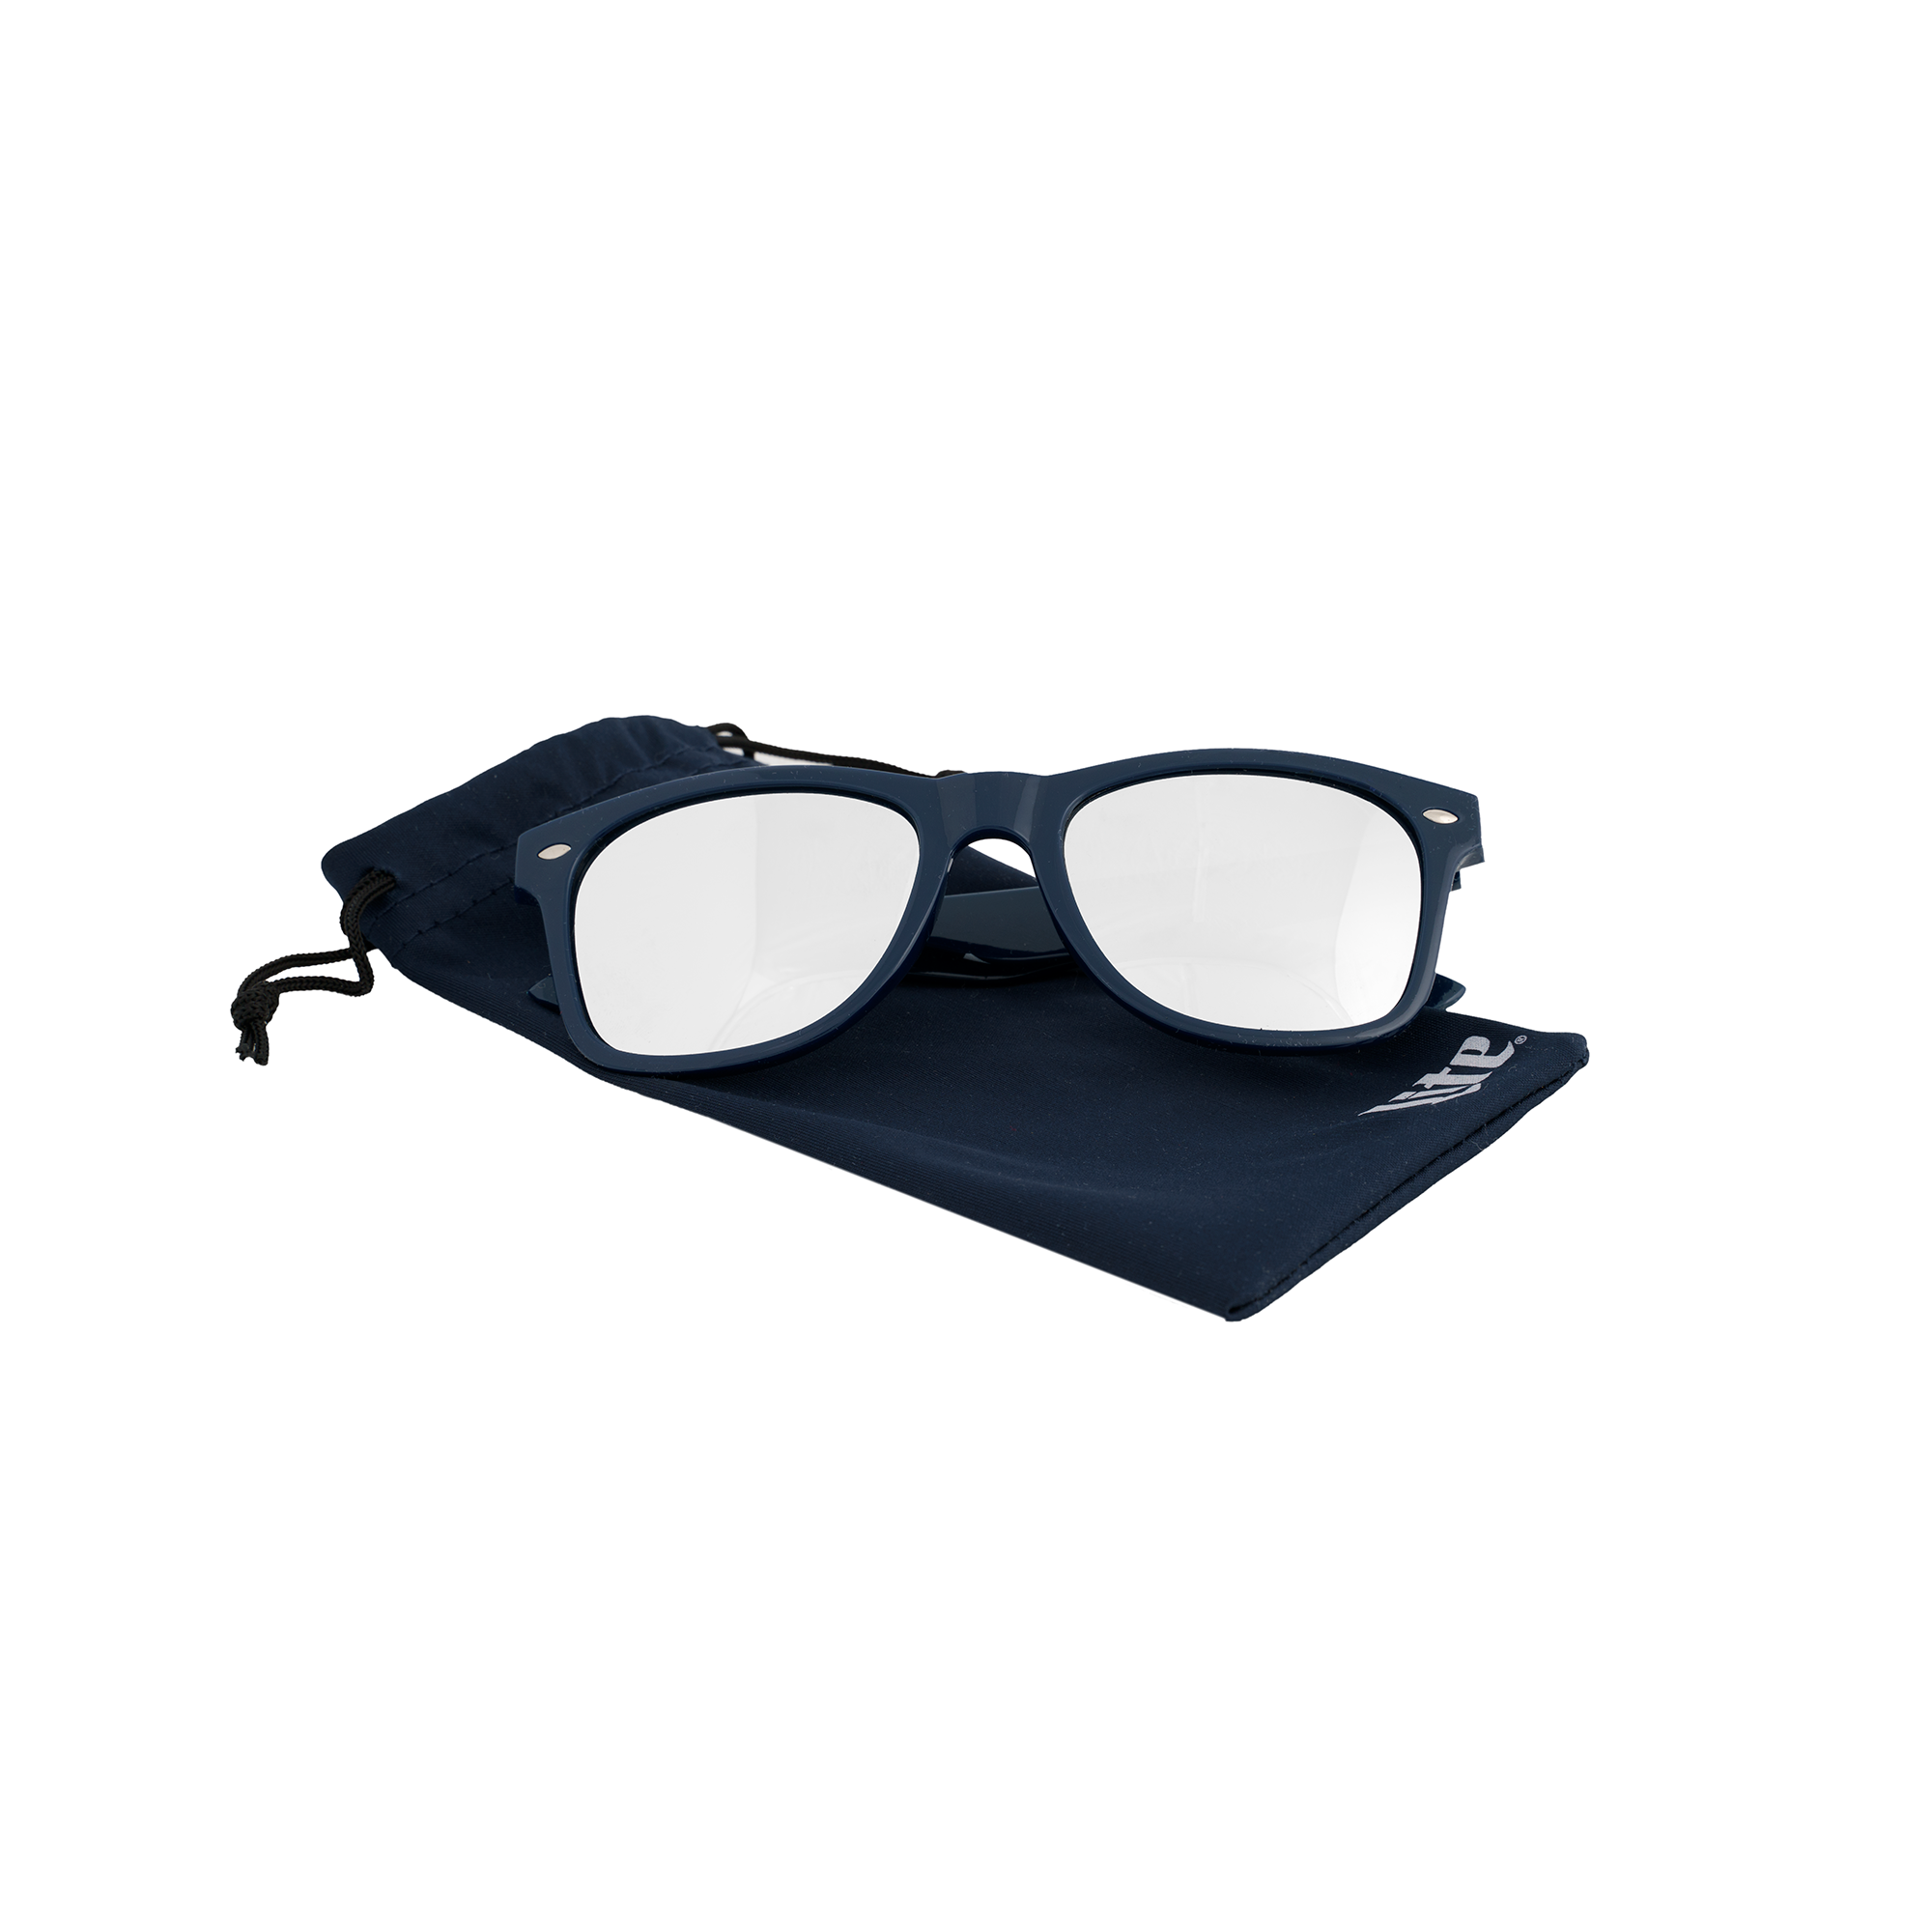 MILLER LITE MIRRORED SUNGLASSES W/POUCH